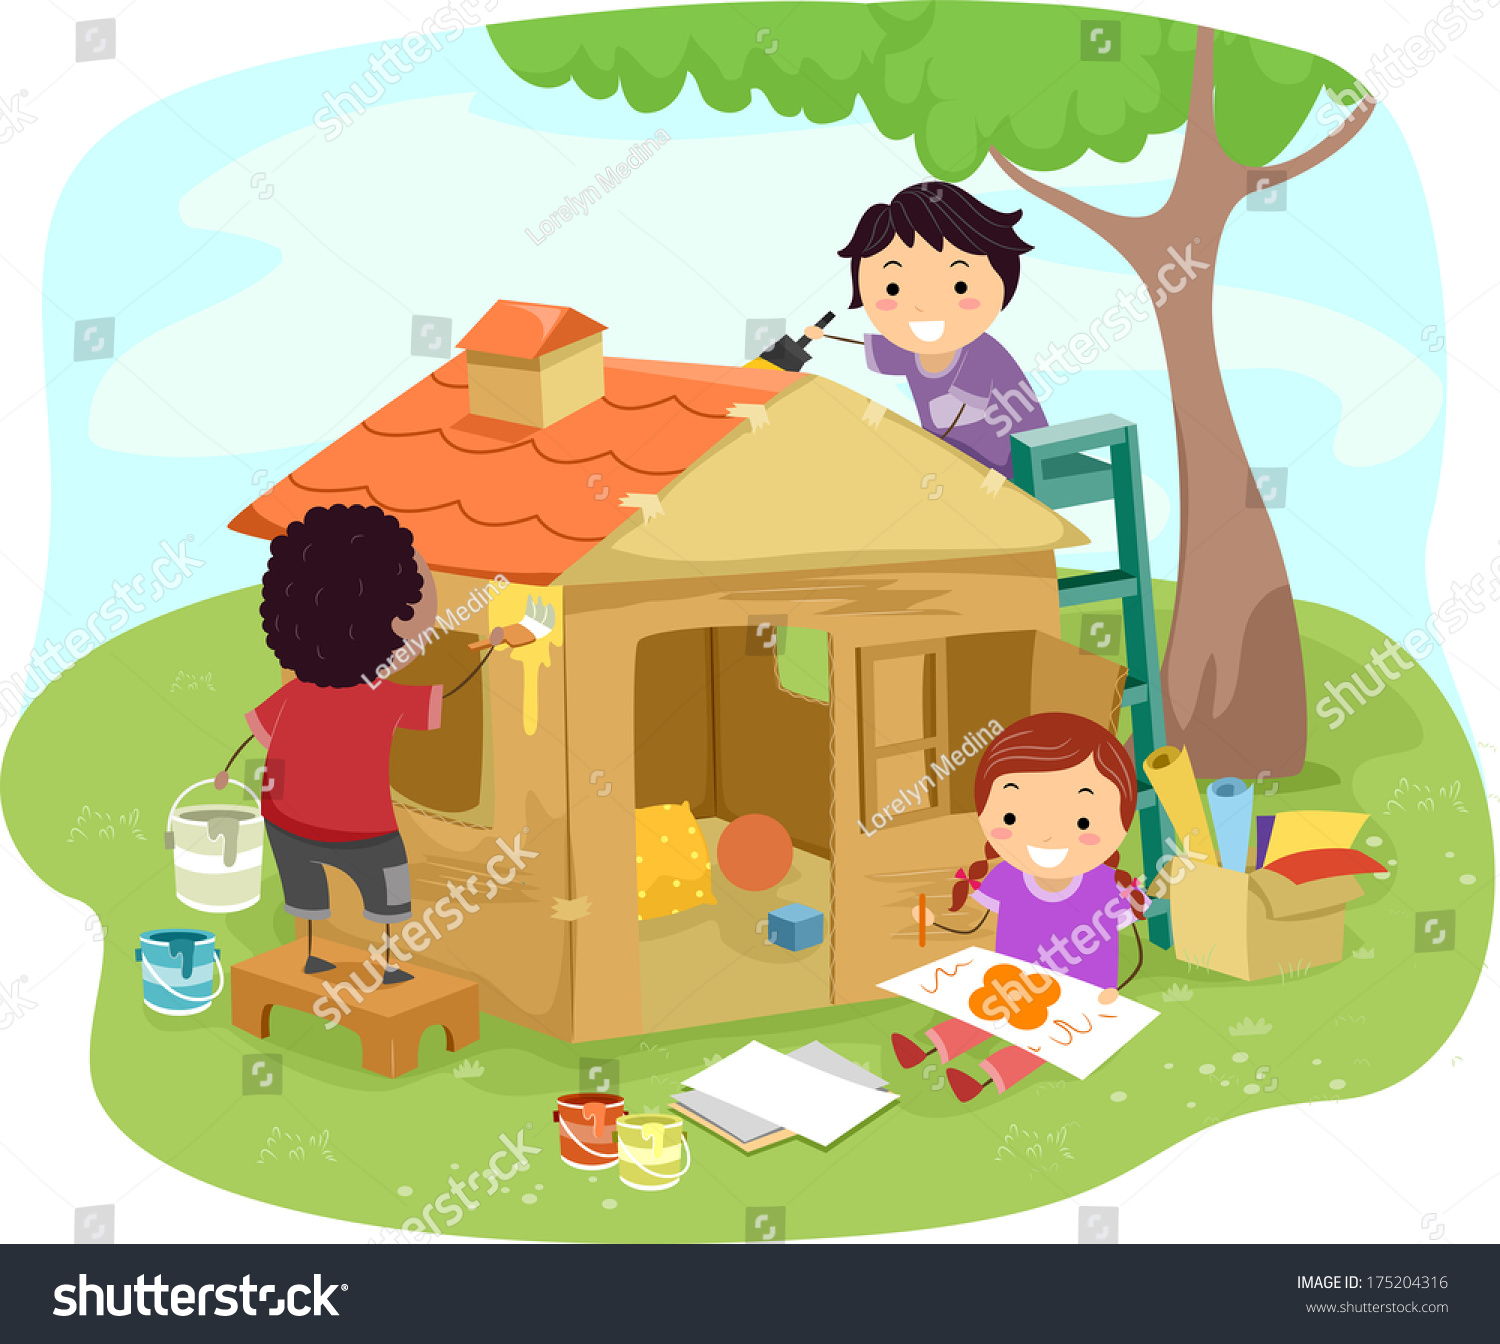 Illustration Kids Building Play House Together Stock